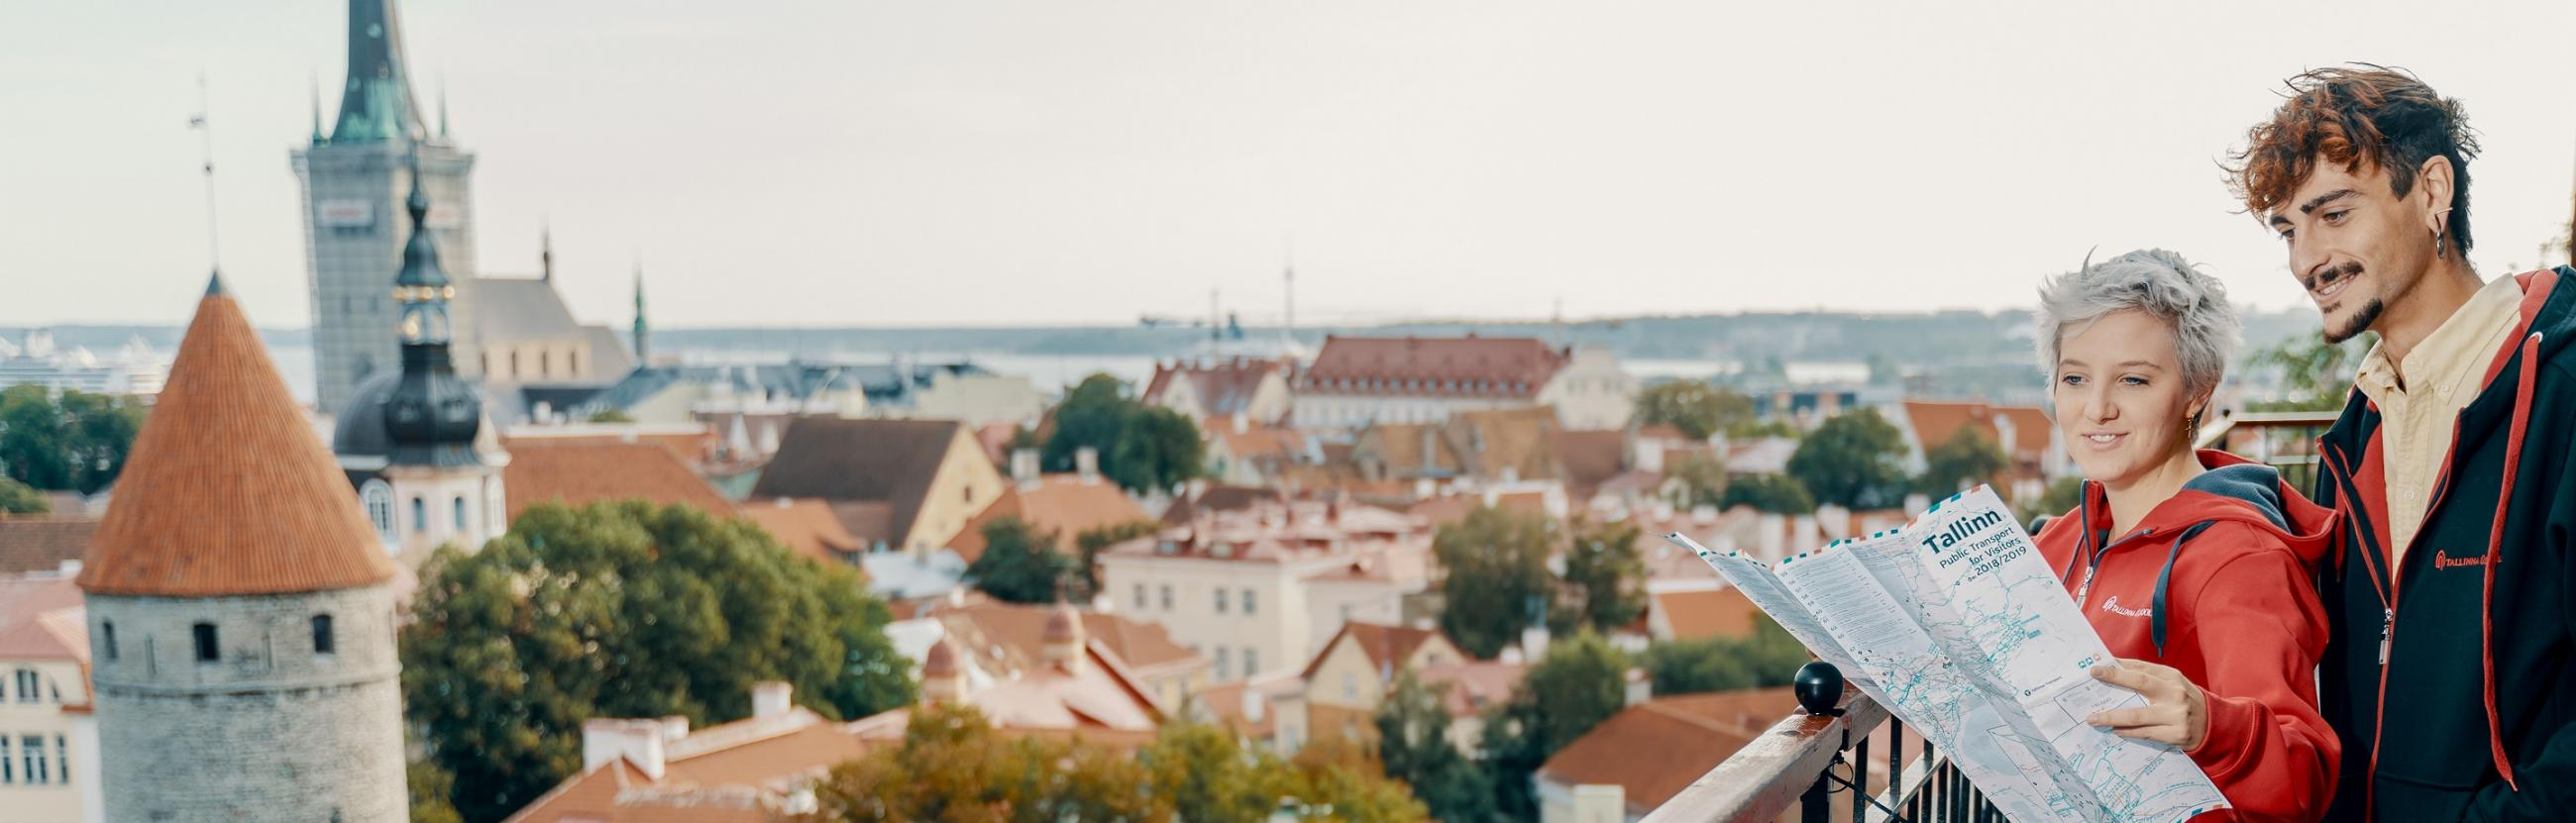 tallinn panorama with students